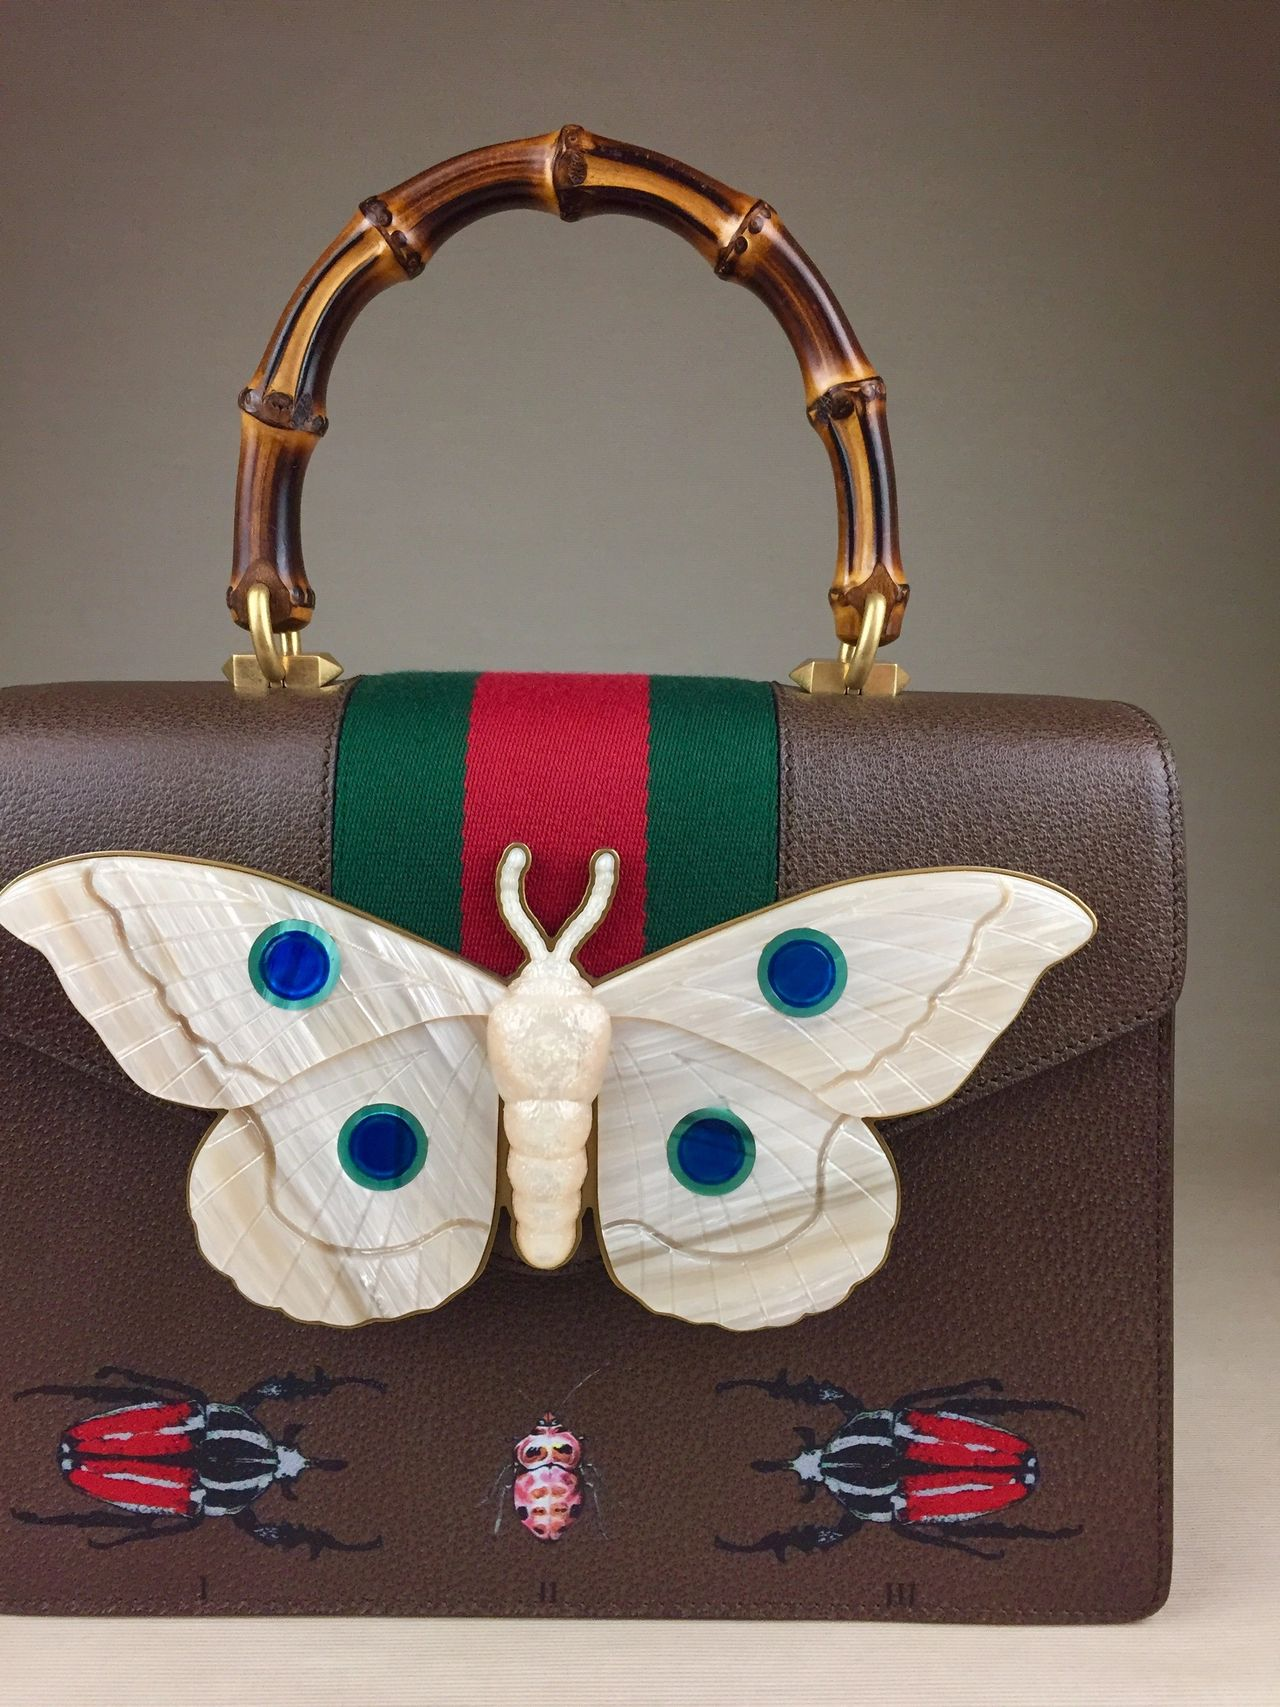 e05195f7429d61 How to tell a real GUCCI handbag from a fake one